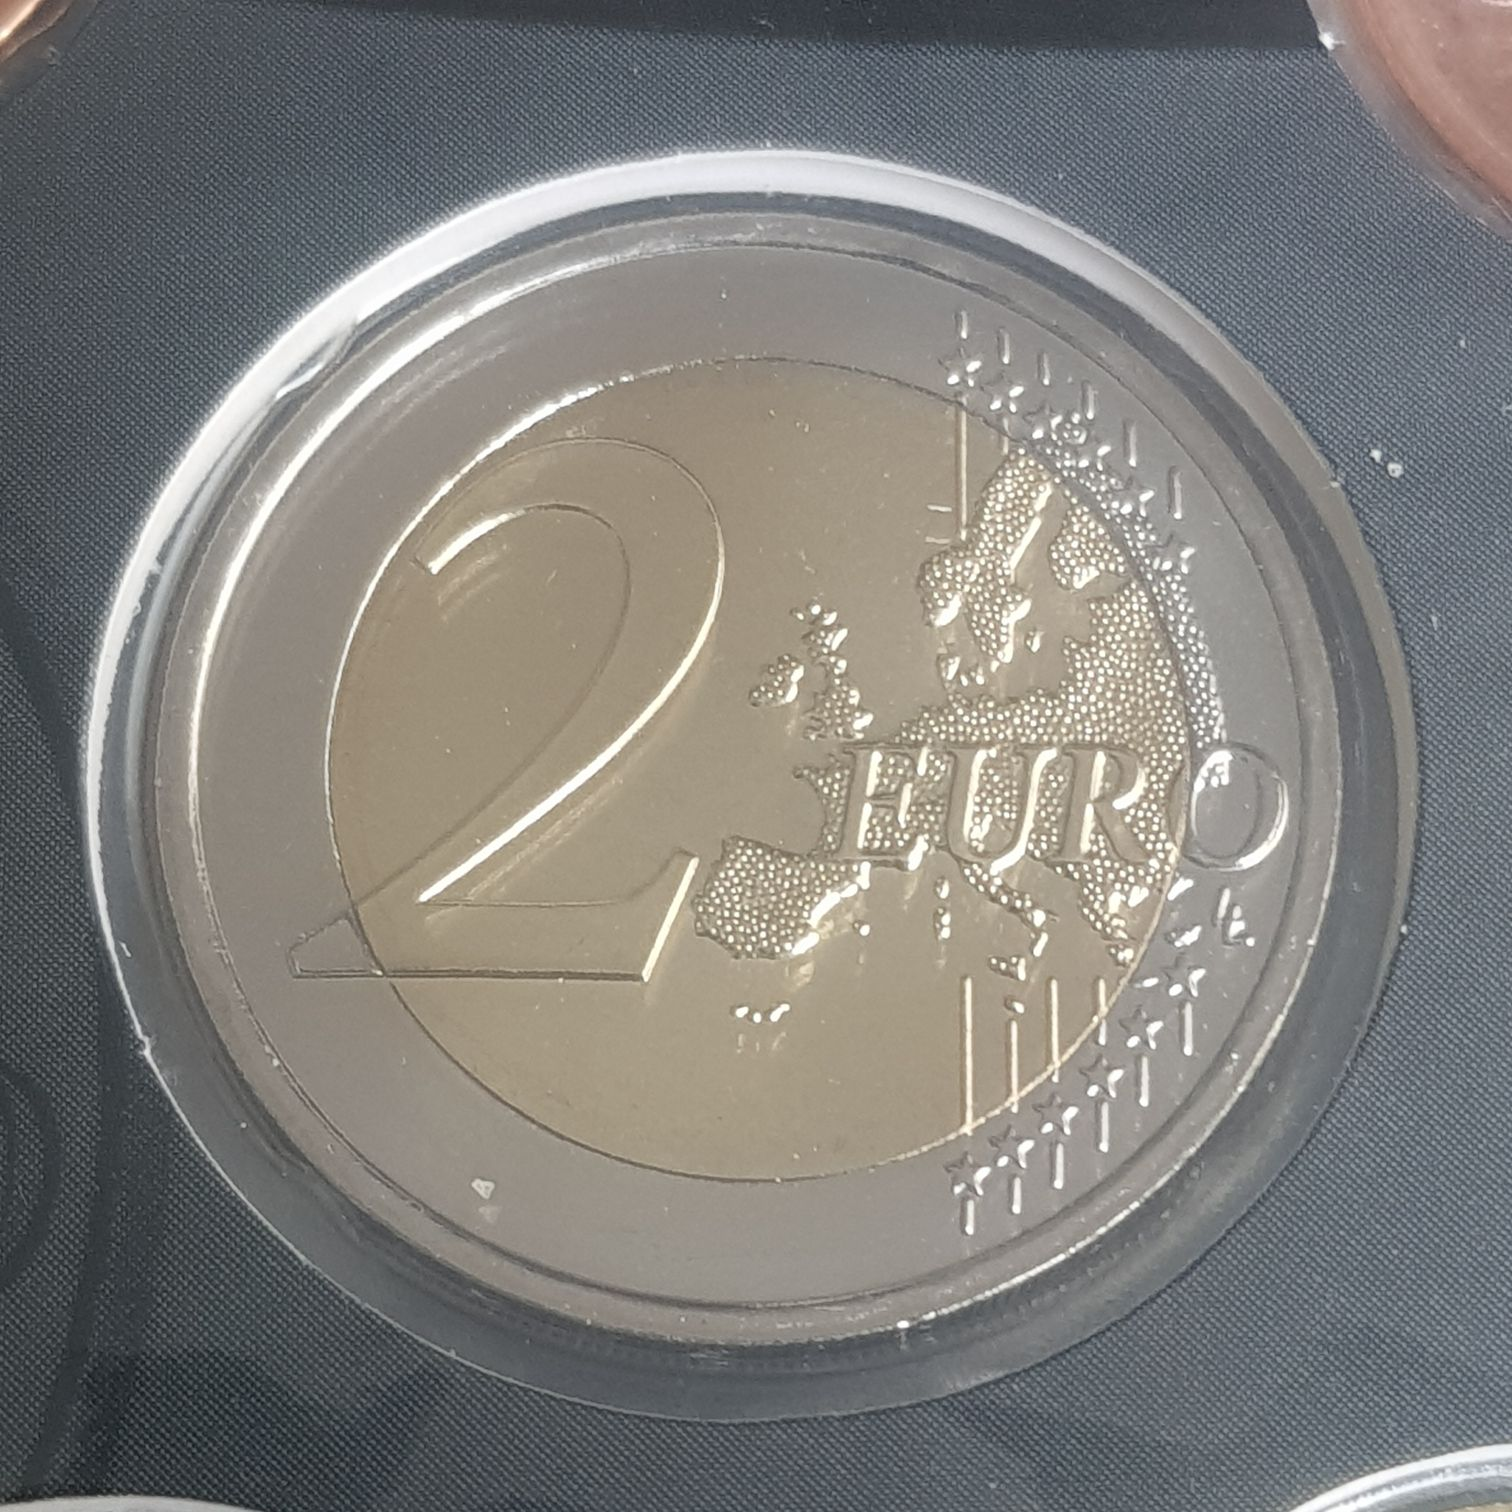 2 Euros Coin - $2 (2016) front image (front cover)